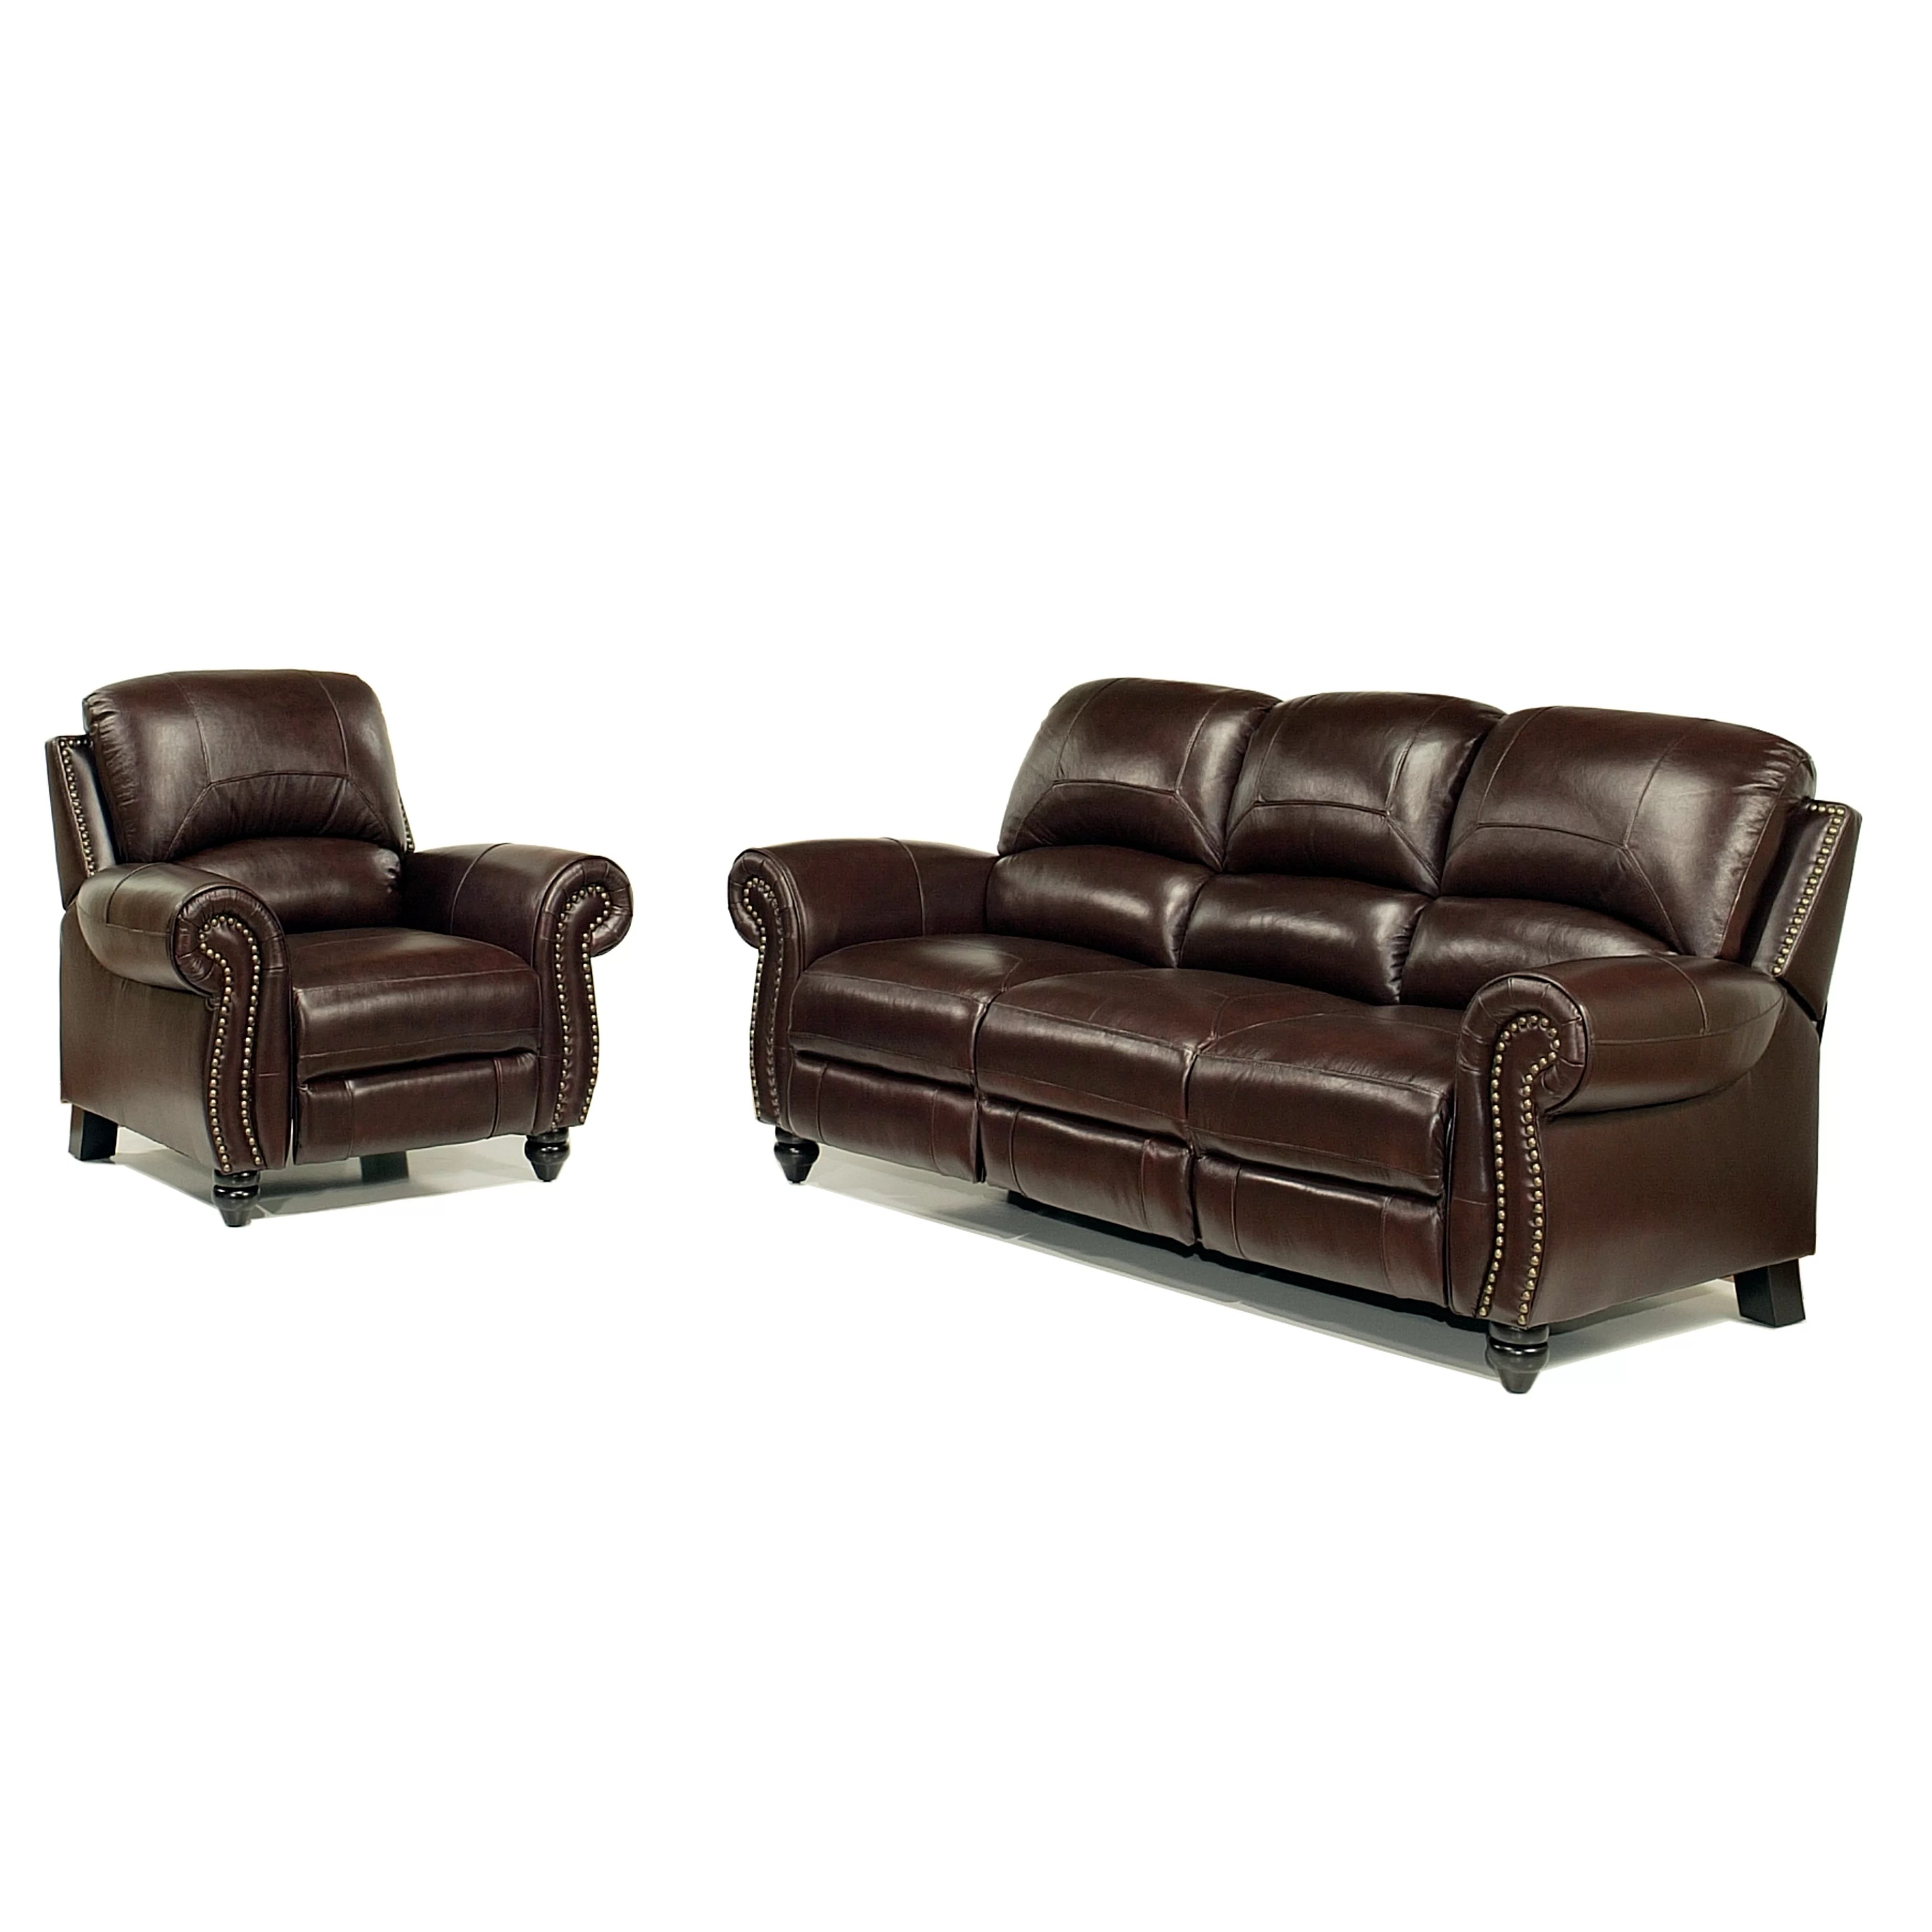 marlow reclining sofa loveseat and chair set cama bogota colombia darby home co kahle leather